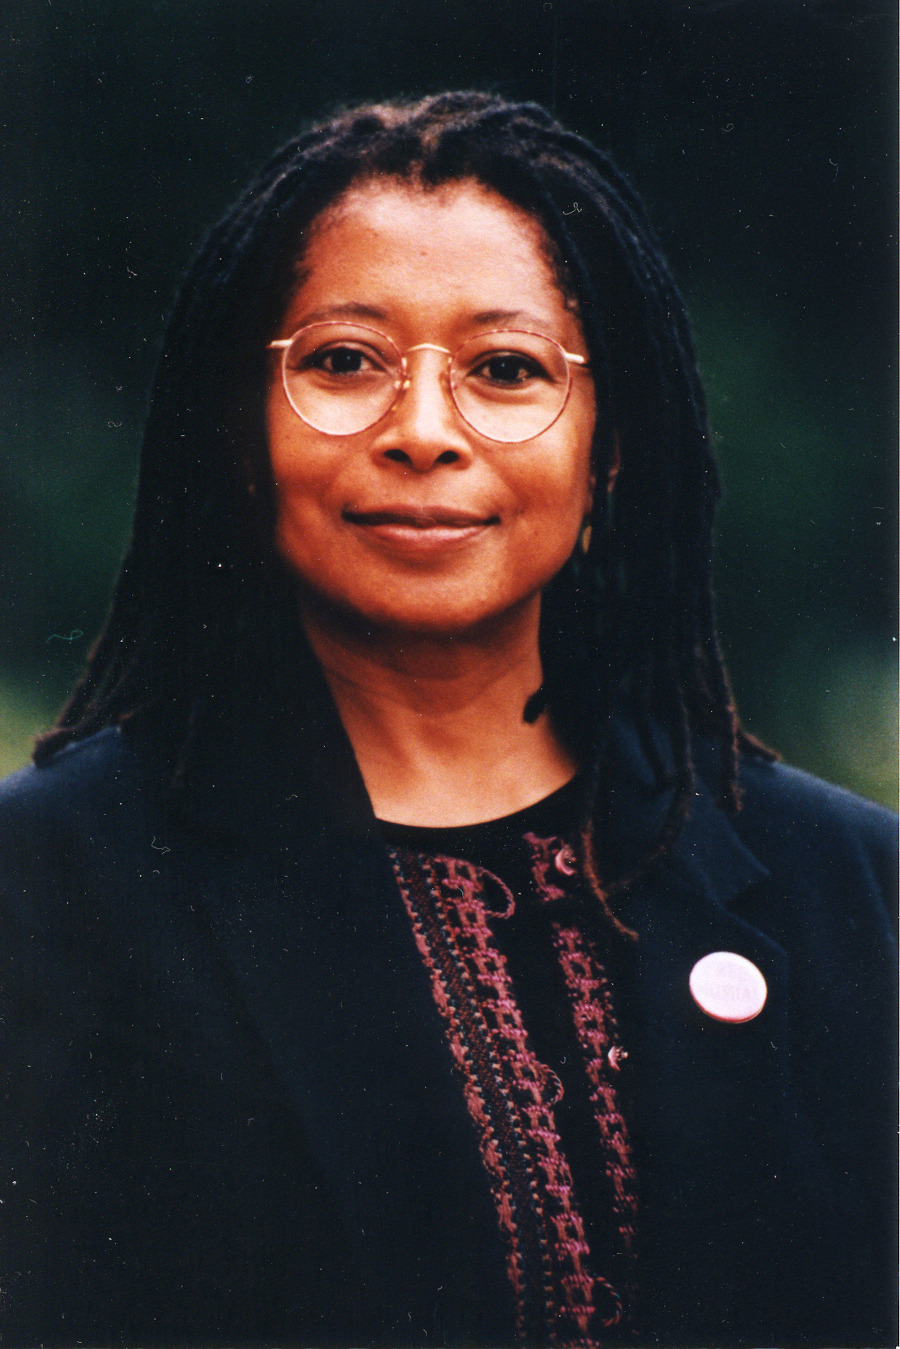 The author of, The Color Purple, Alice Walker was born today, February 9th, 1944. Happy 69th Birthday, Ms. Walker. You are a beloved author.